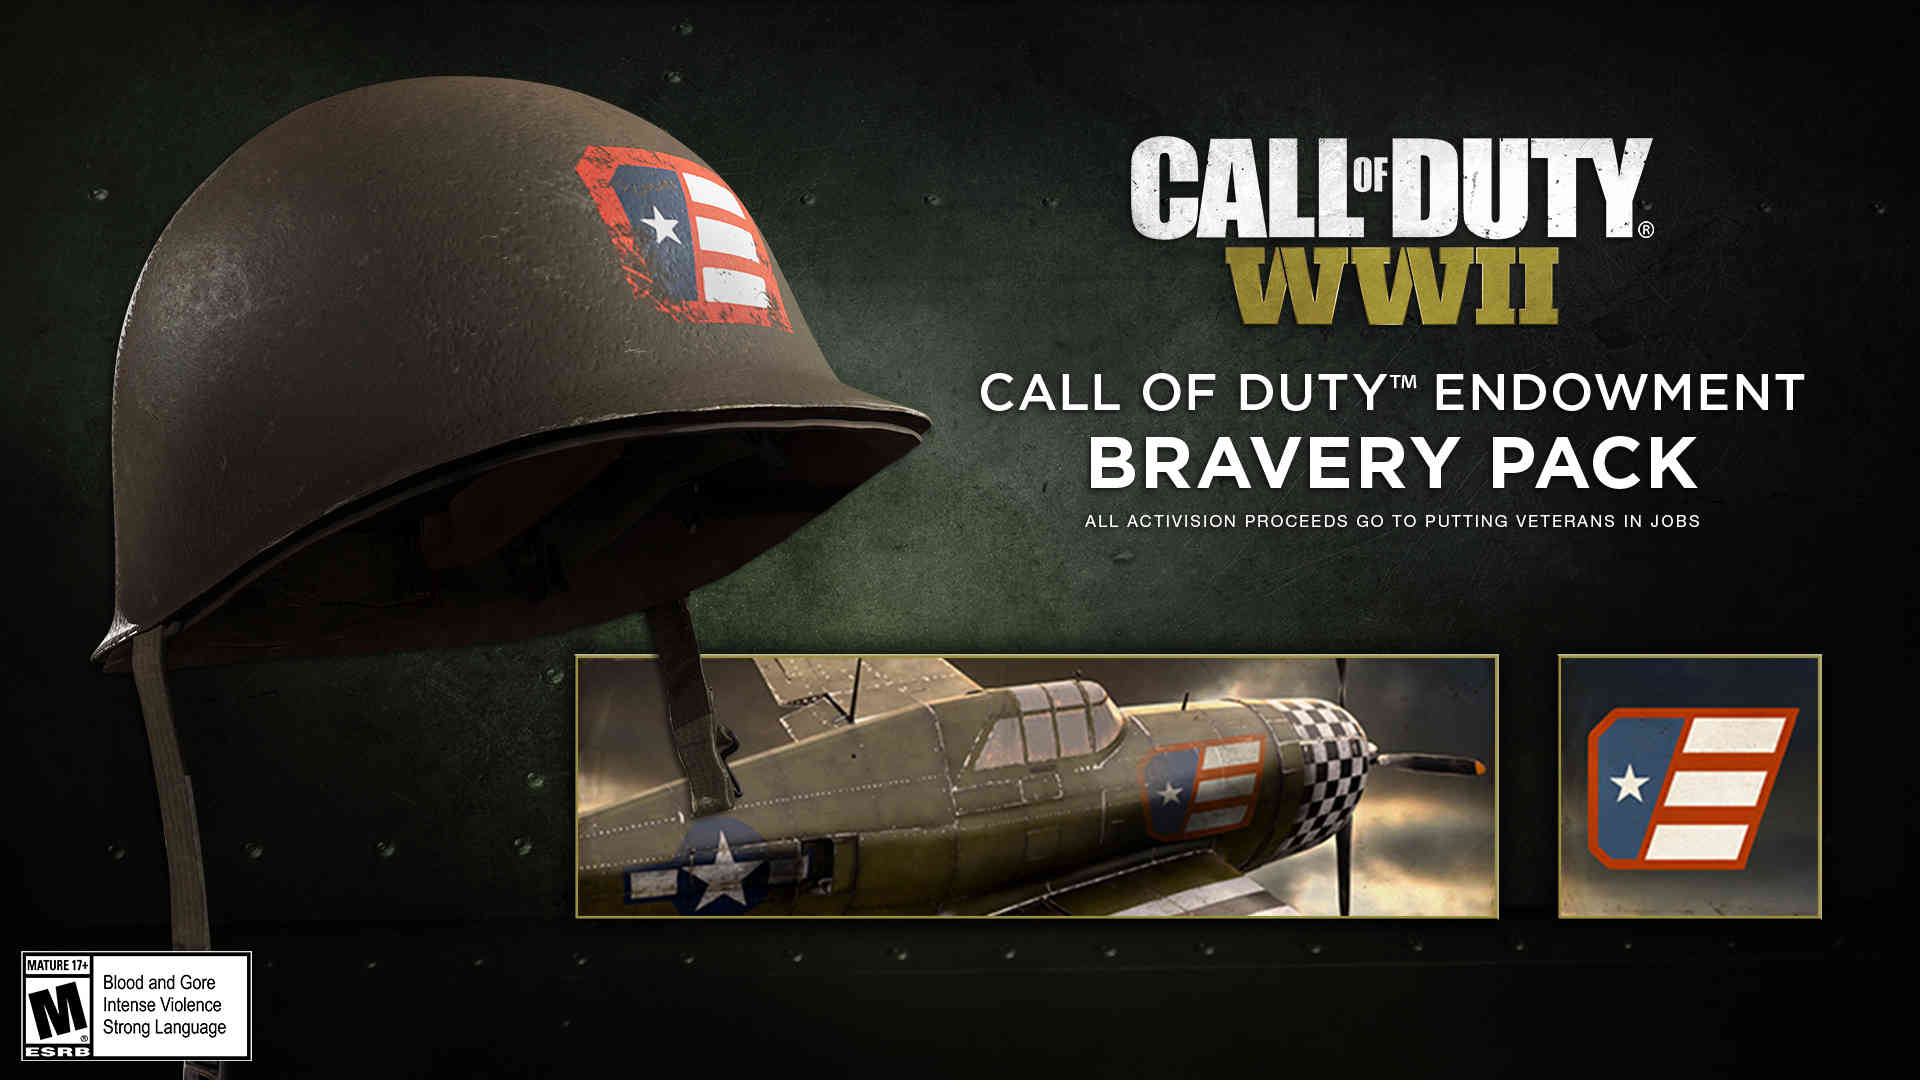 Call of Duty: WWII Bravery Park Supports Veteran Careers